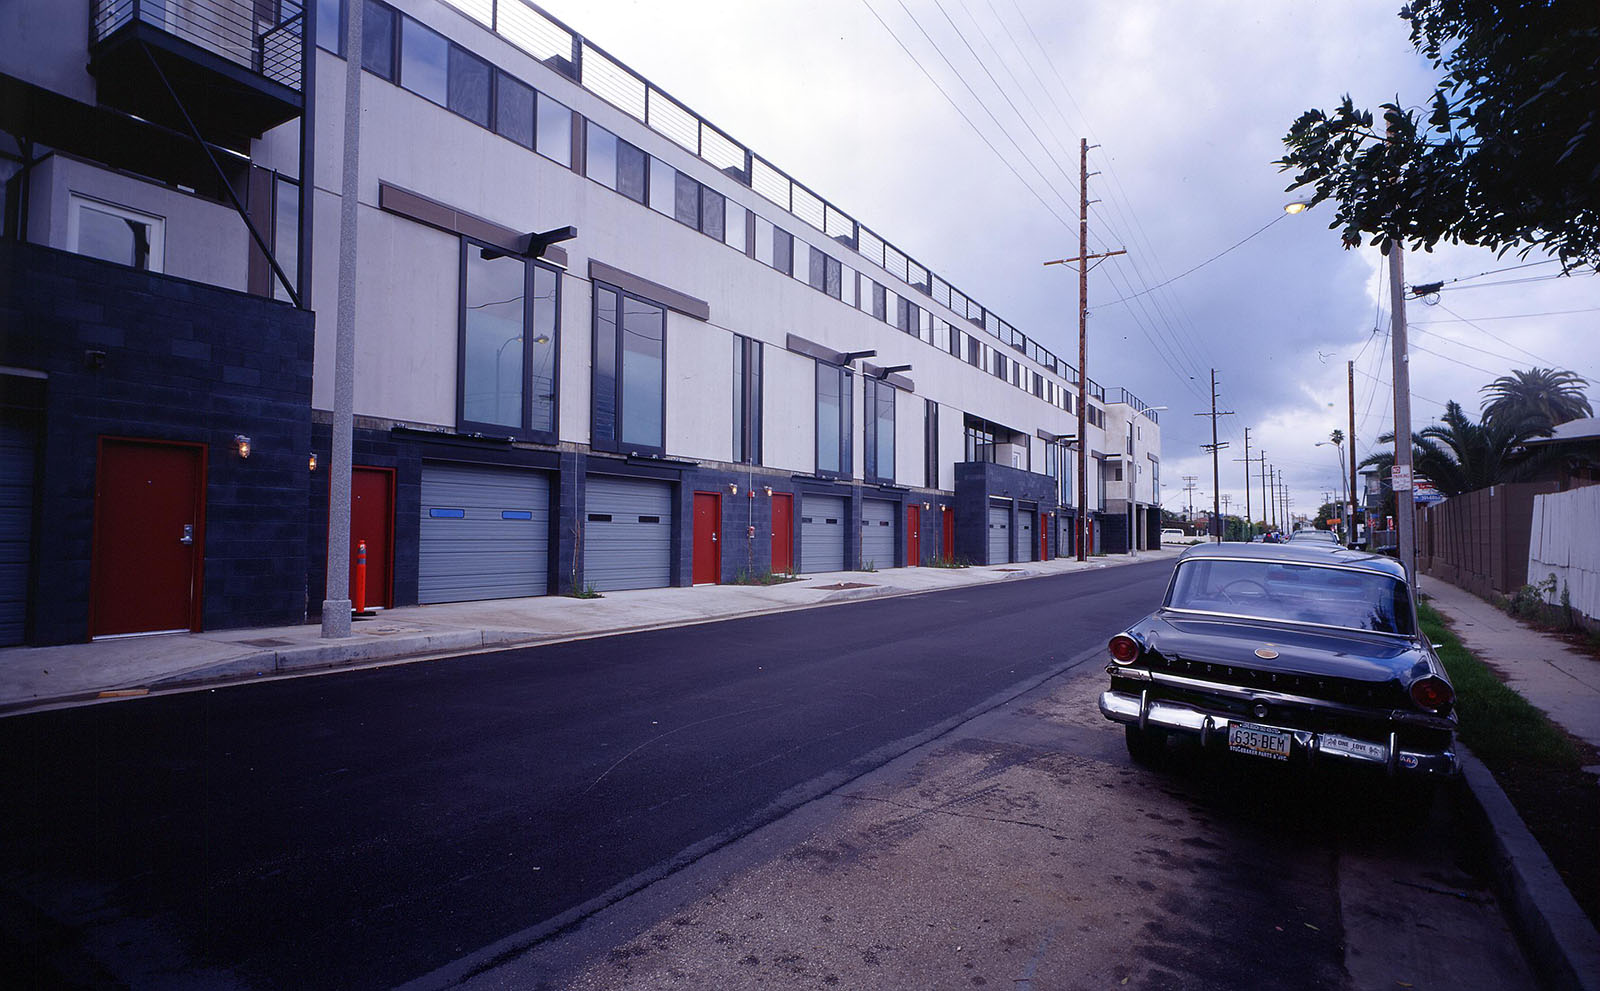 This is a 16 unit live-work condominium development in Venice, CA. This view is looking North on Electric Avenue.